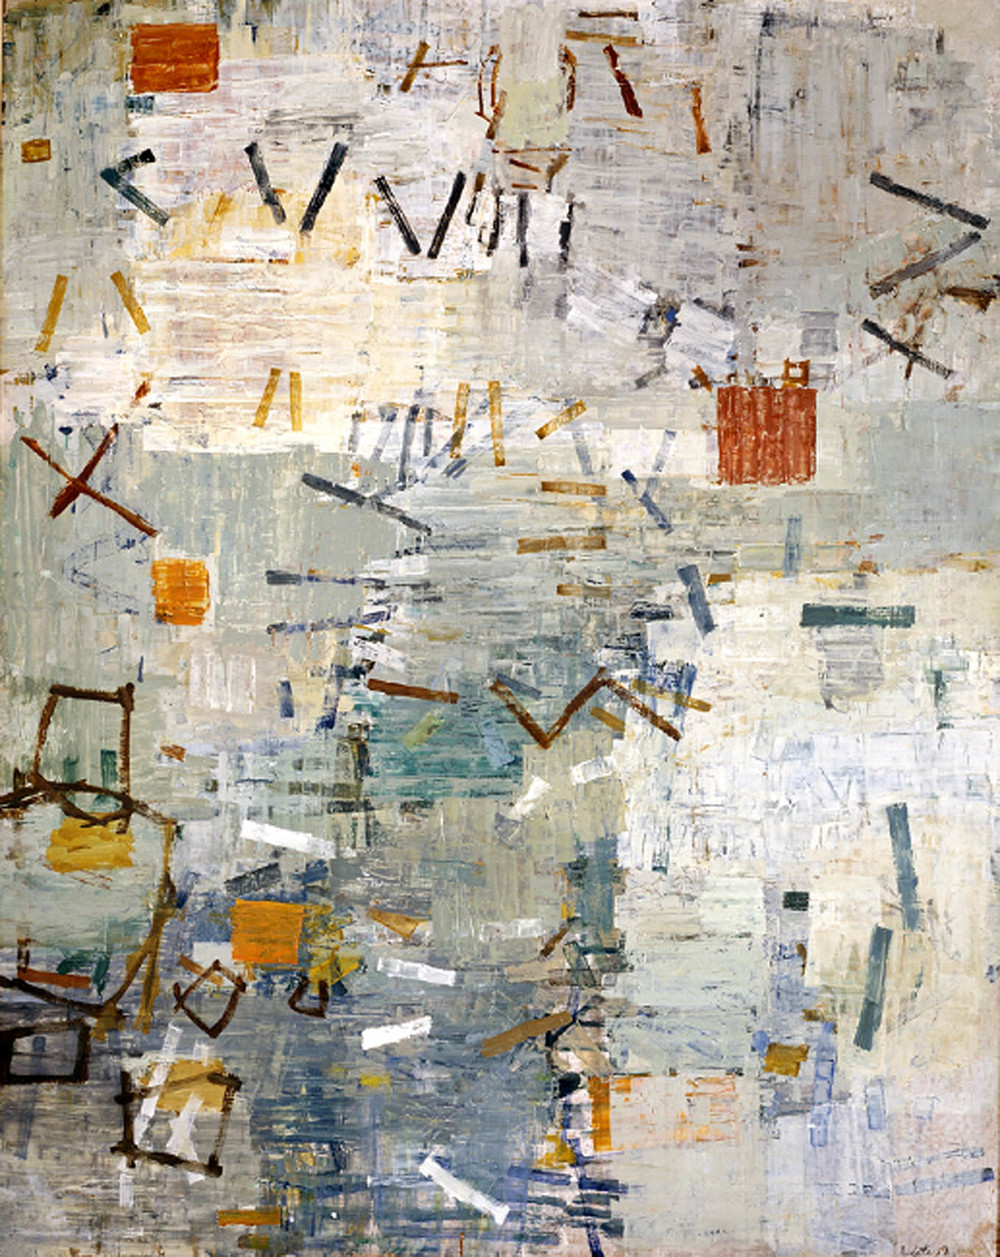 Il miracolo 1957-1958, oil on (composition board) (159.6 x 127.0 cm) via